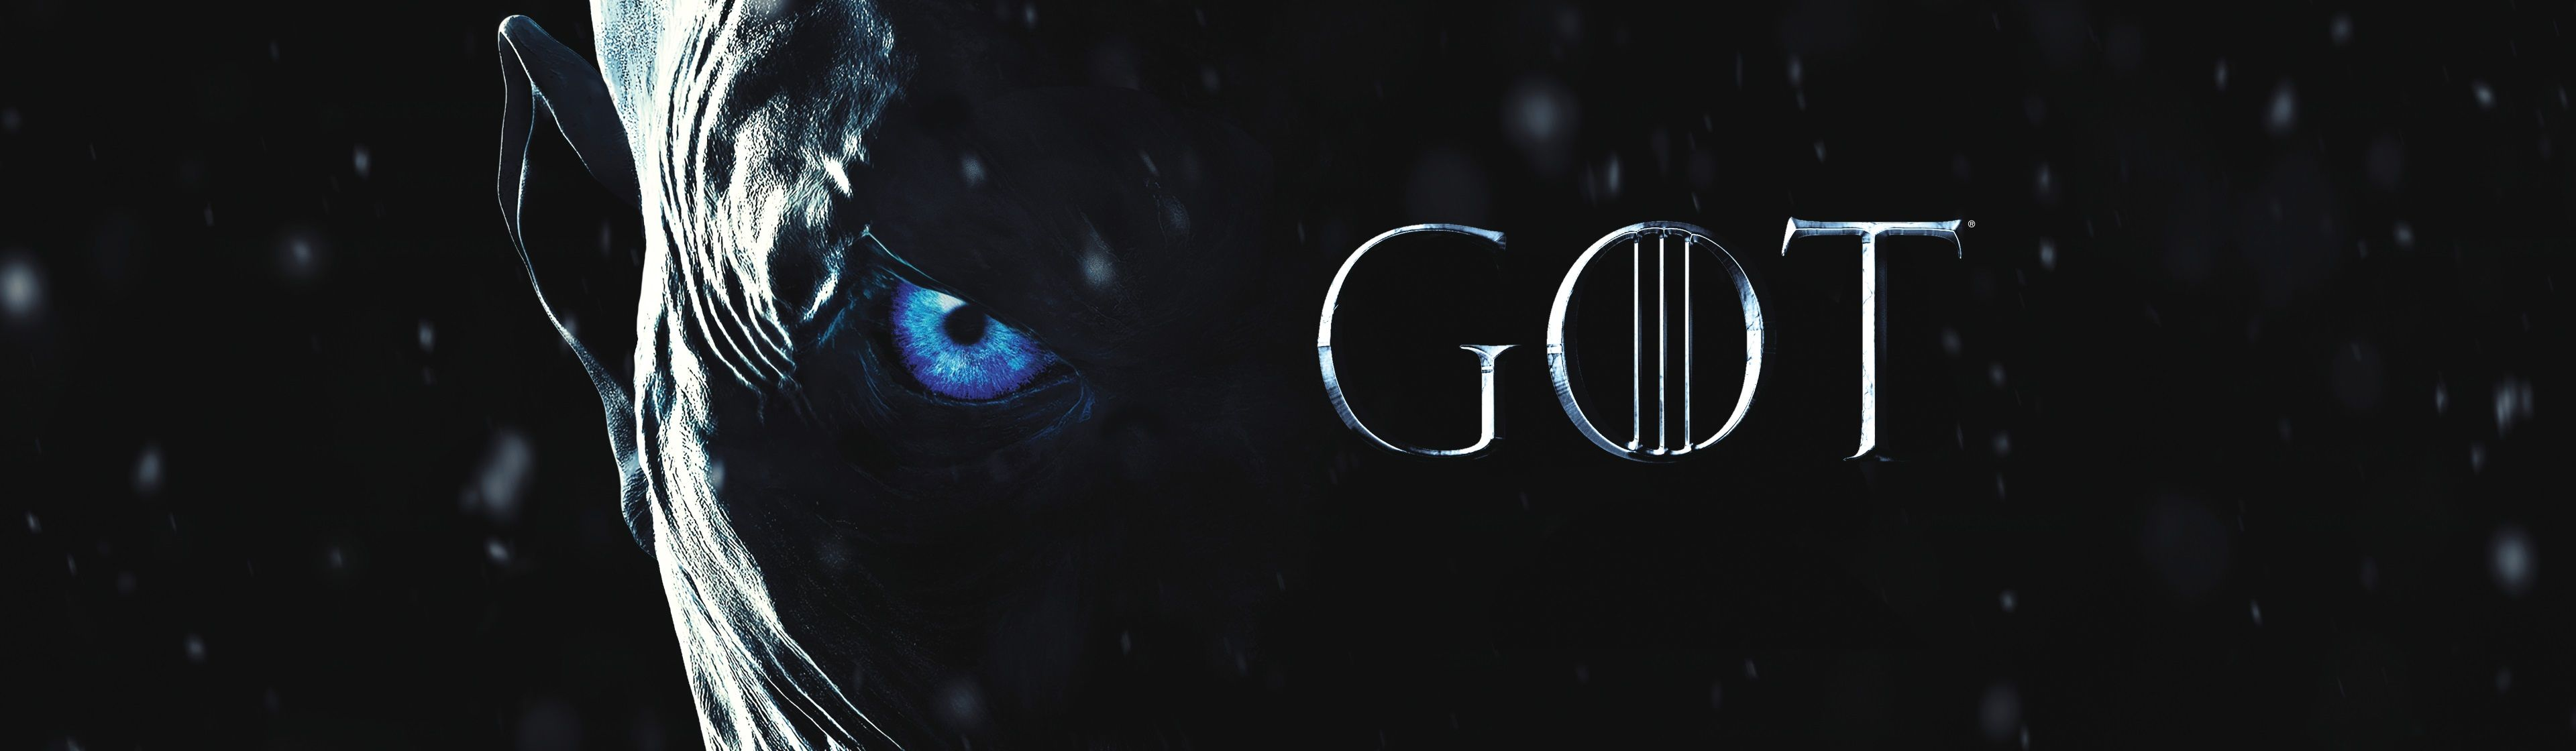 3840x1120 Game Of Thrones 4k Wallpaper Hd Backgrounds Images 4k Wallpaper For Mobile Background Images Hd Backgrounds